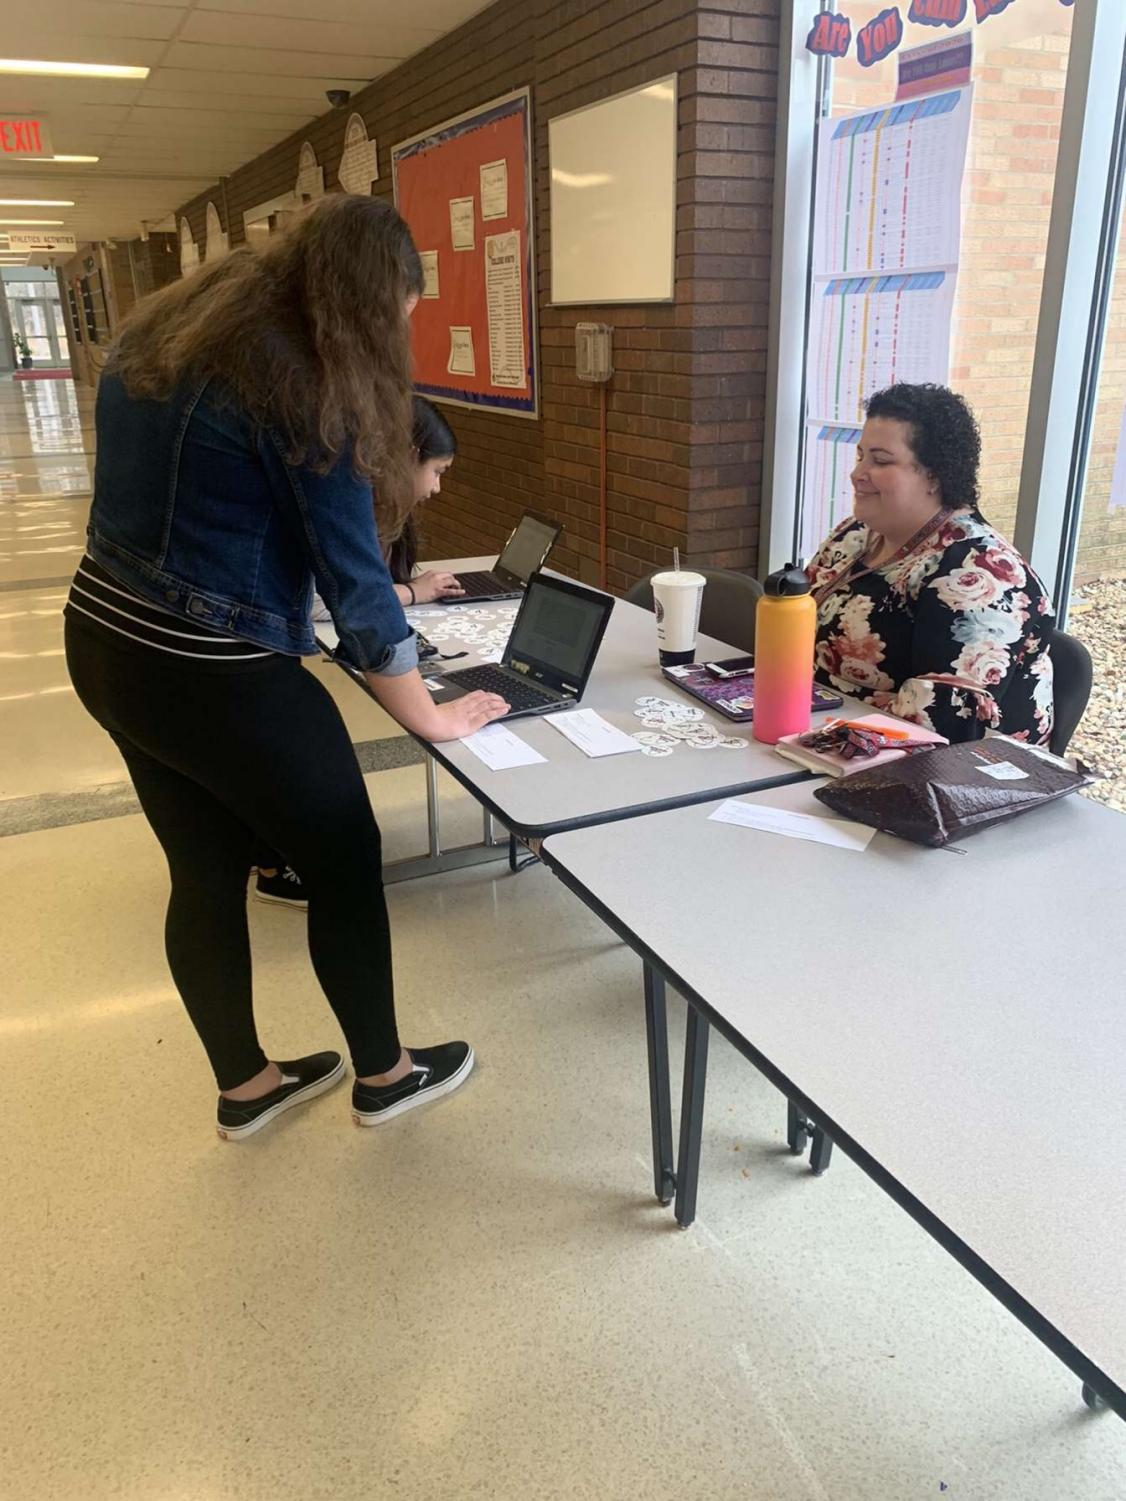 Junior Emily Lewis registered to vote in the Antioch Communities High School Commons.